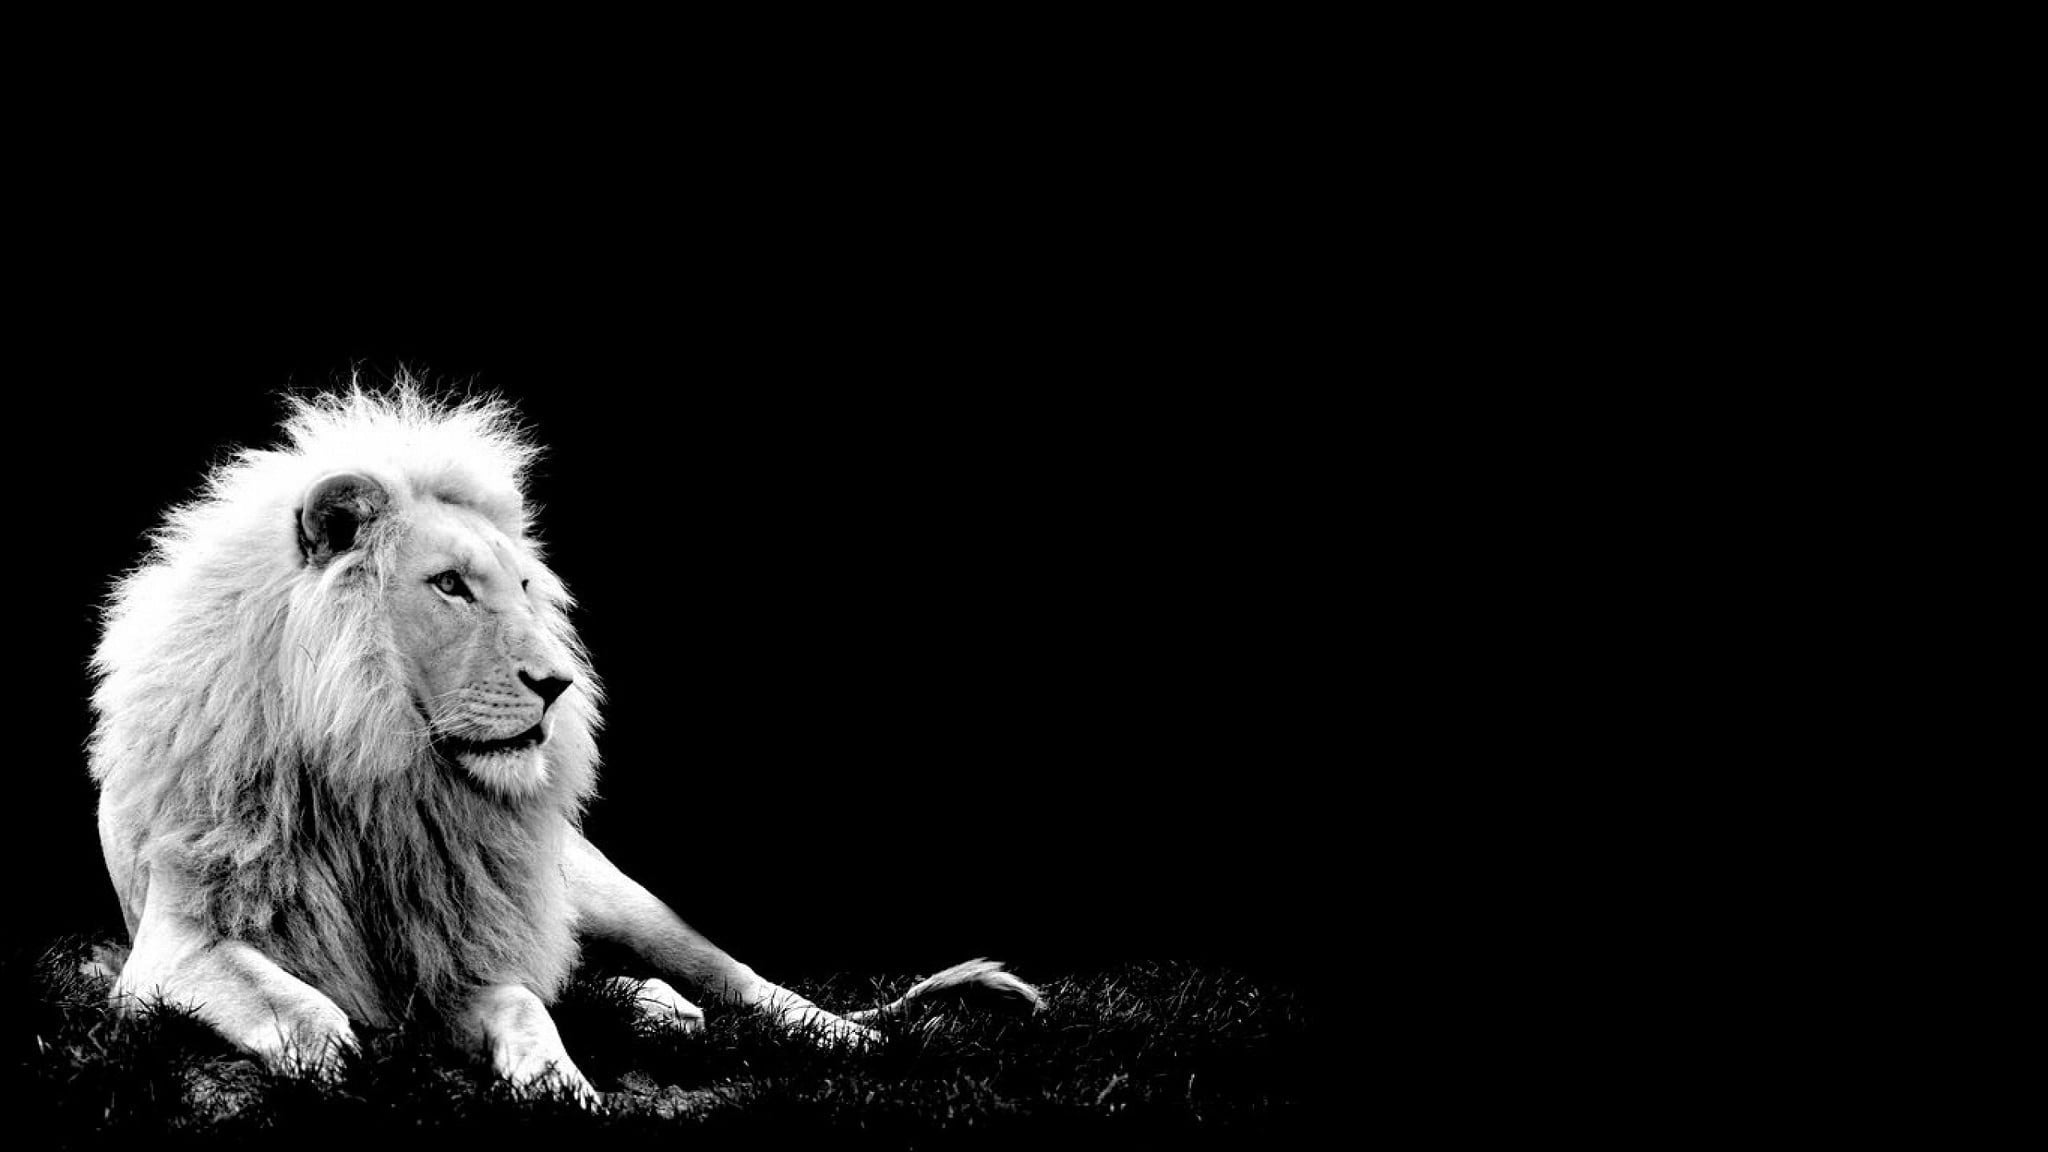 Lions tumblr black and white